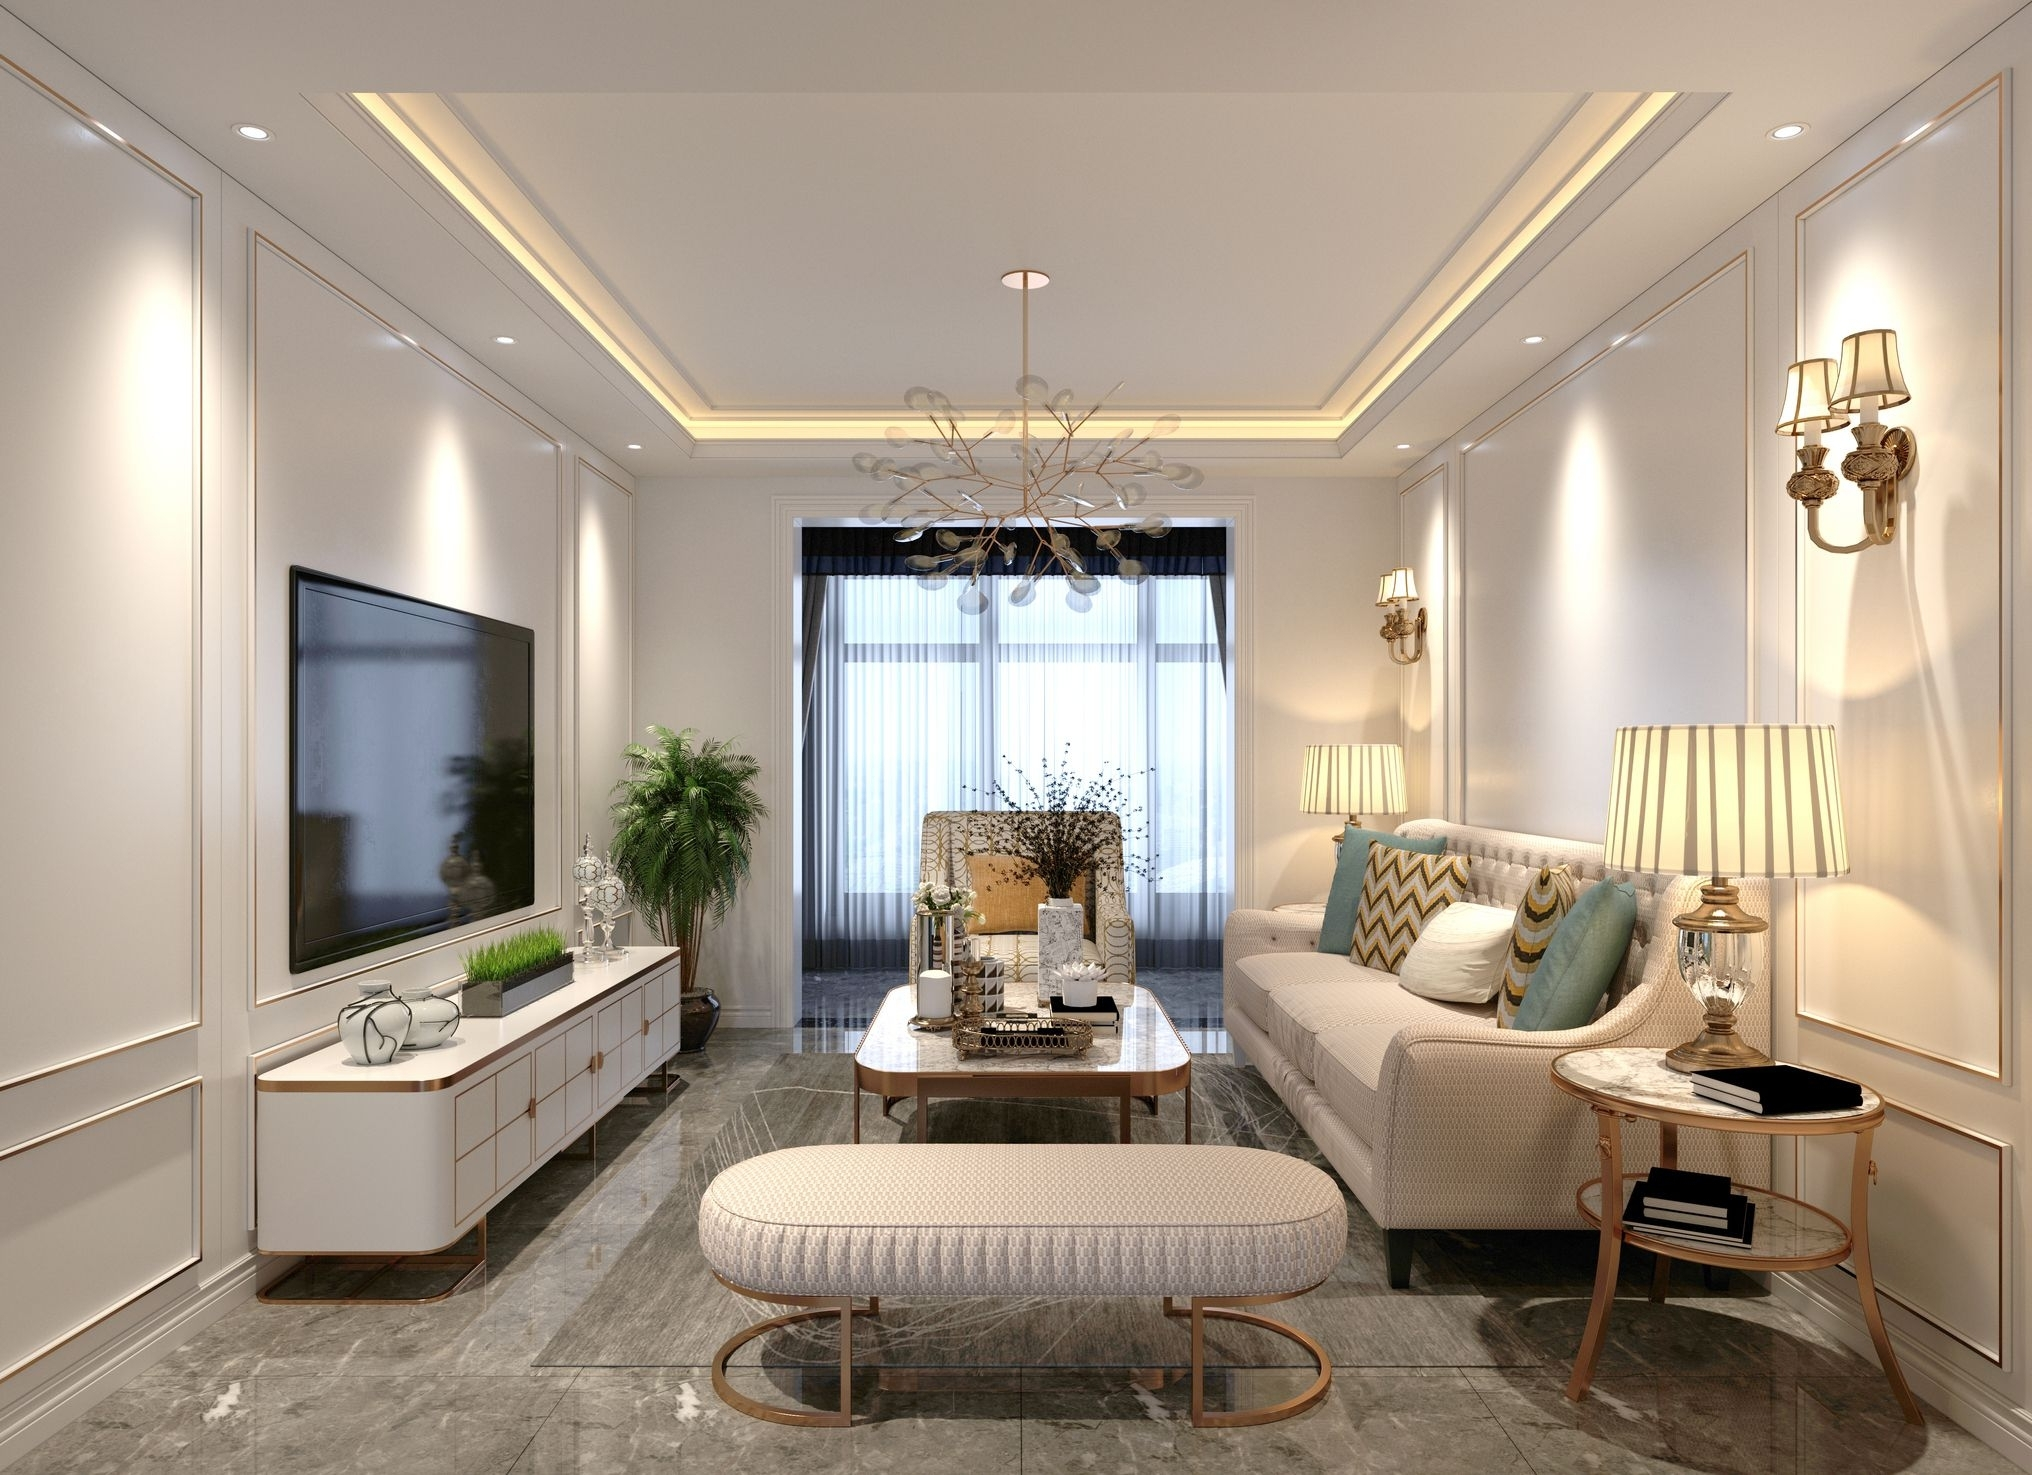 Living Room Lighting Ideas 30+ Recessed Lighting In Living Rooms Examples Inspirations